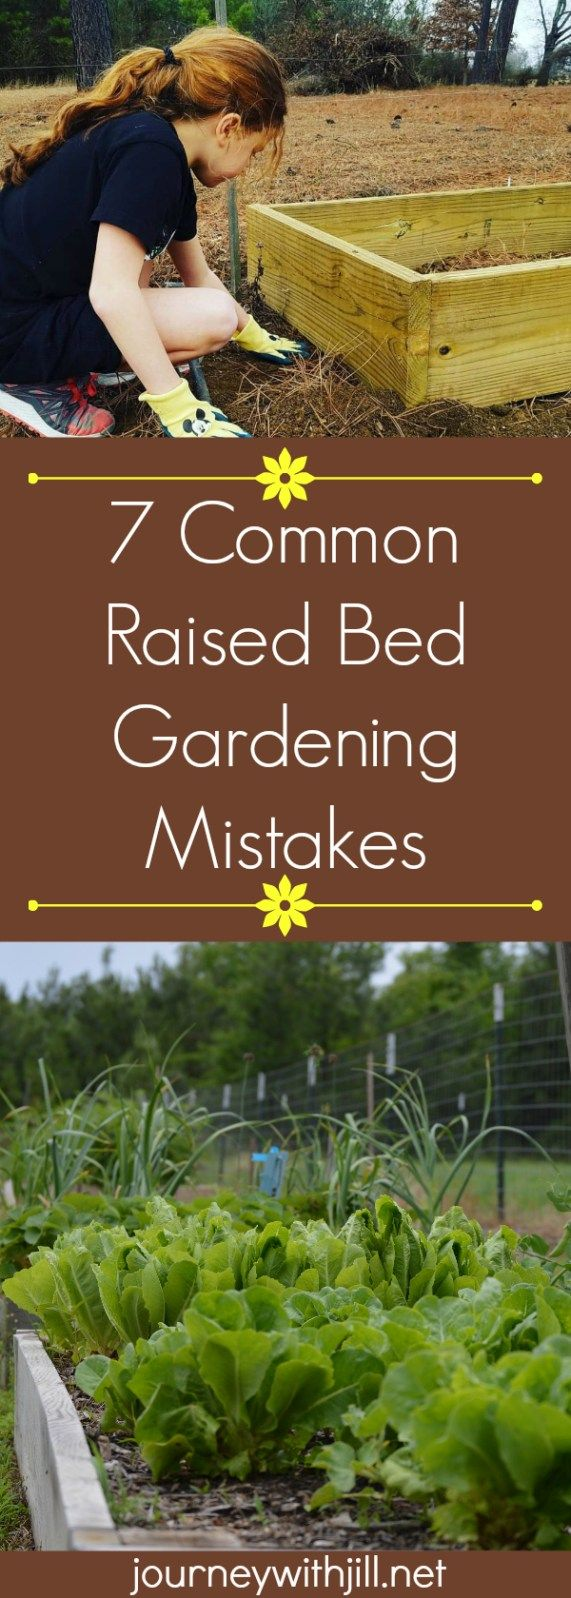 Garden bed with trees   Common Mistakes in Raised Bed Gardening  Yard trees plants